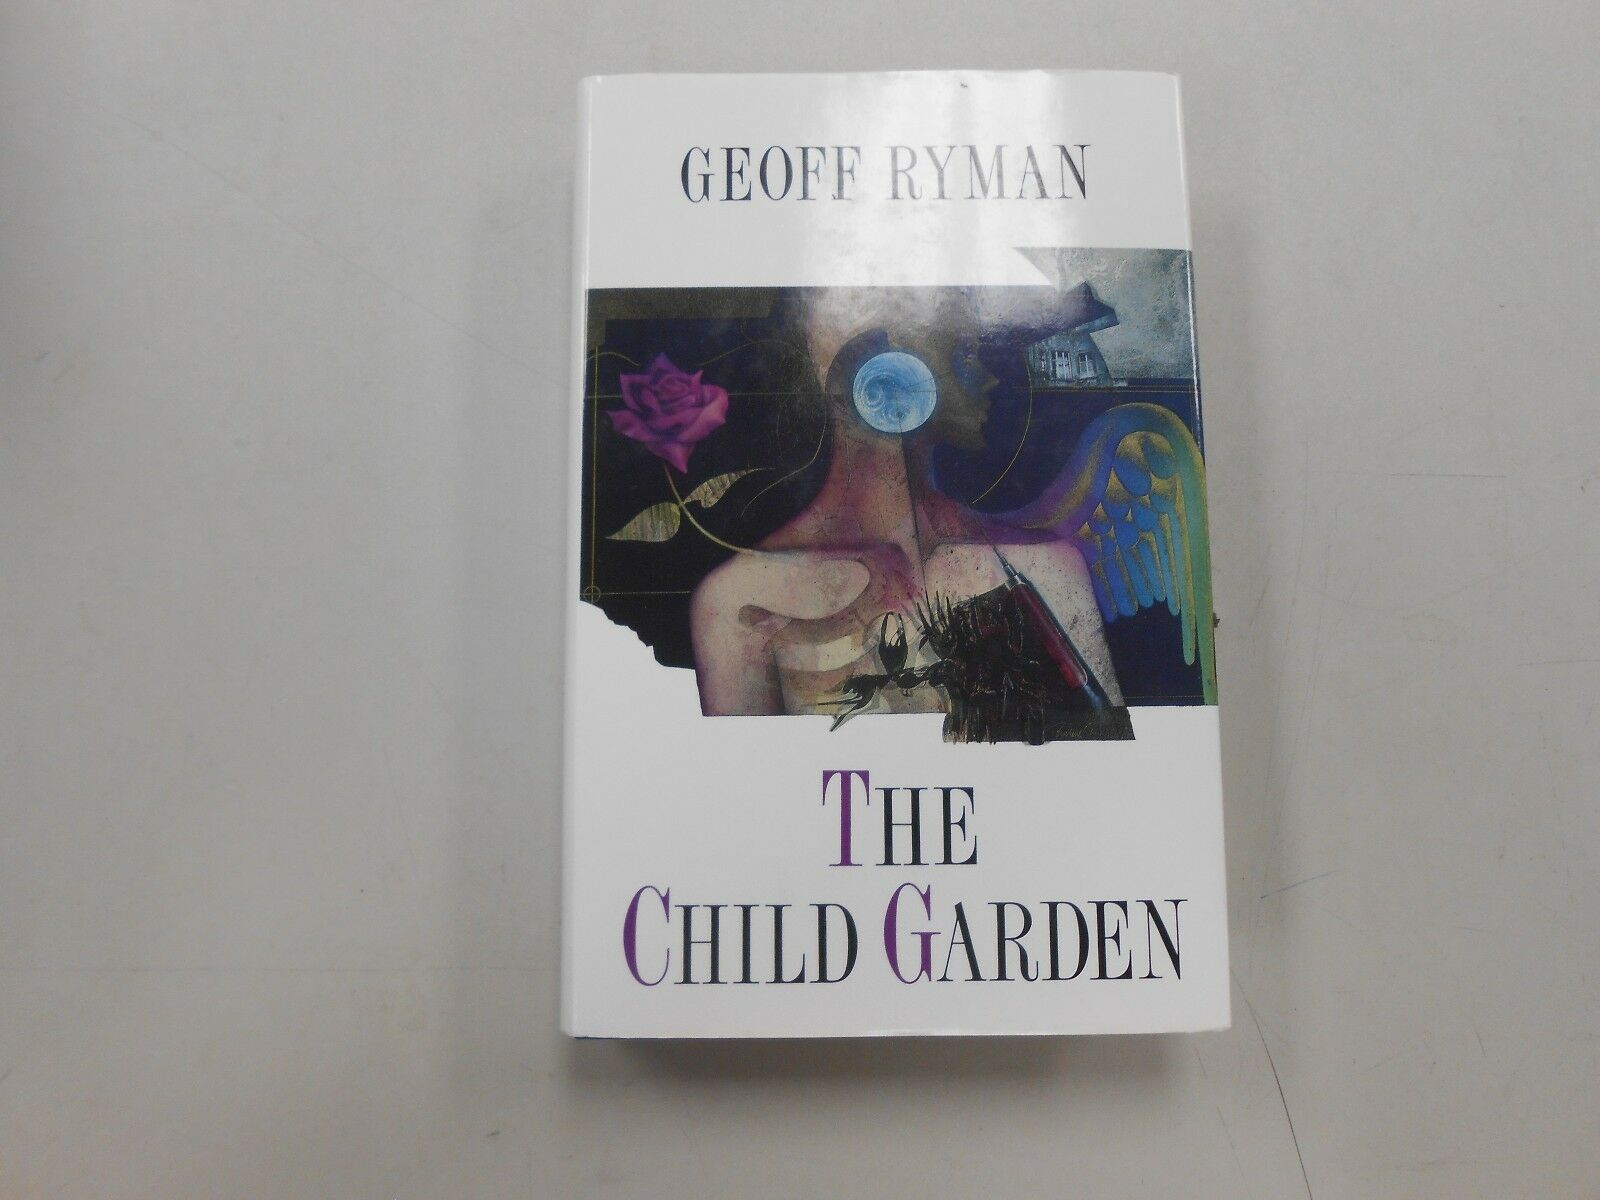 The Child Garden: A Great Novel by Geoff Ryman